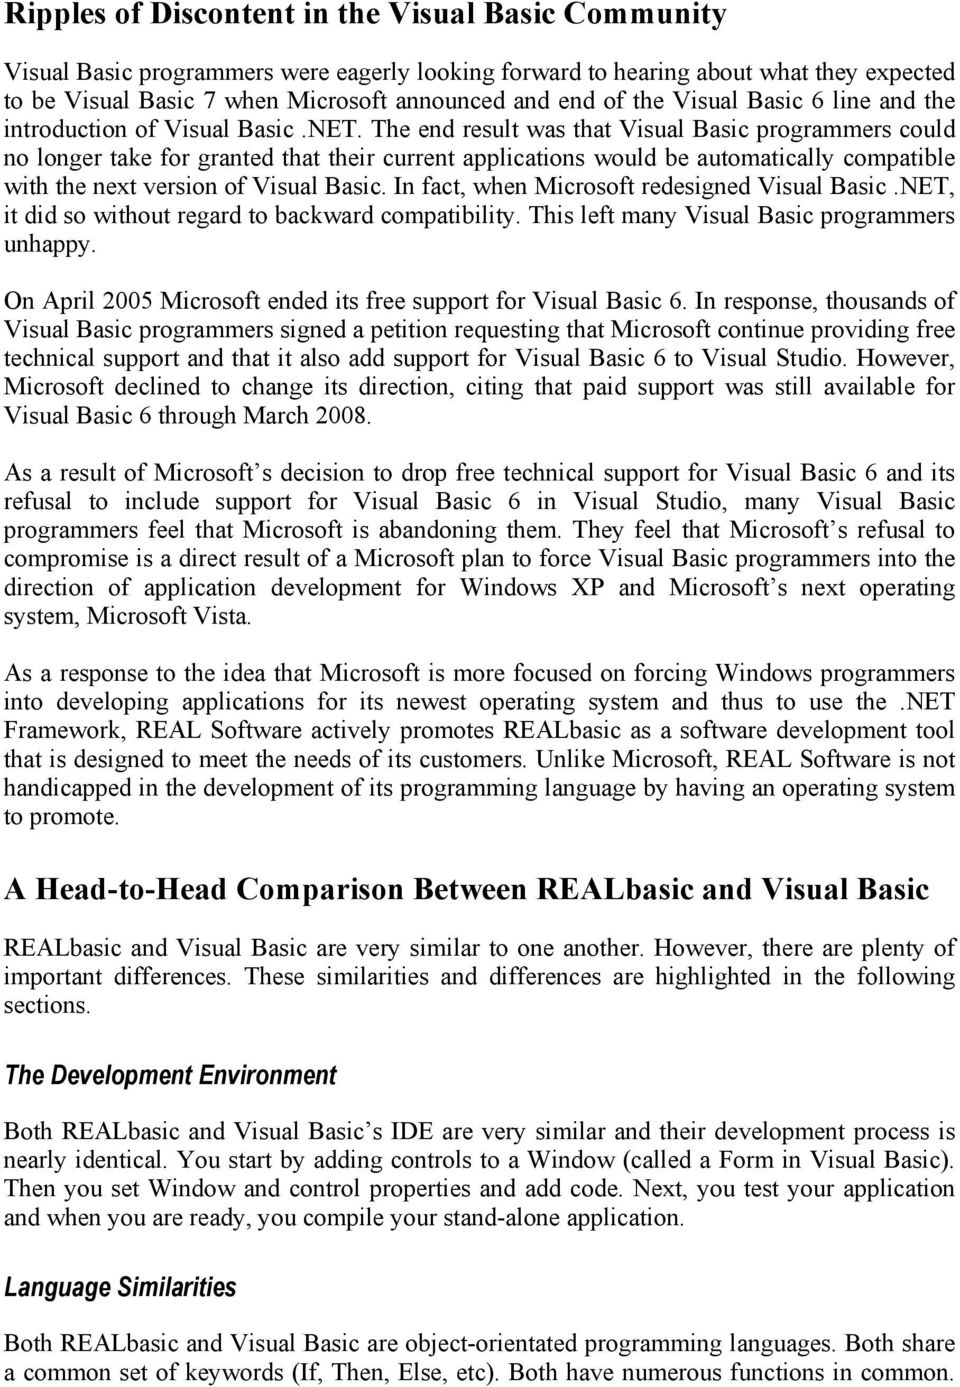 REALbasic versus Visual Basic - PDF